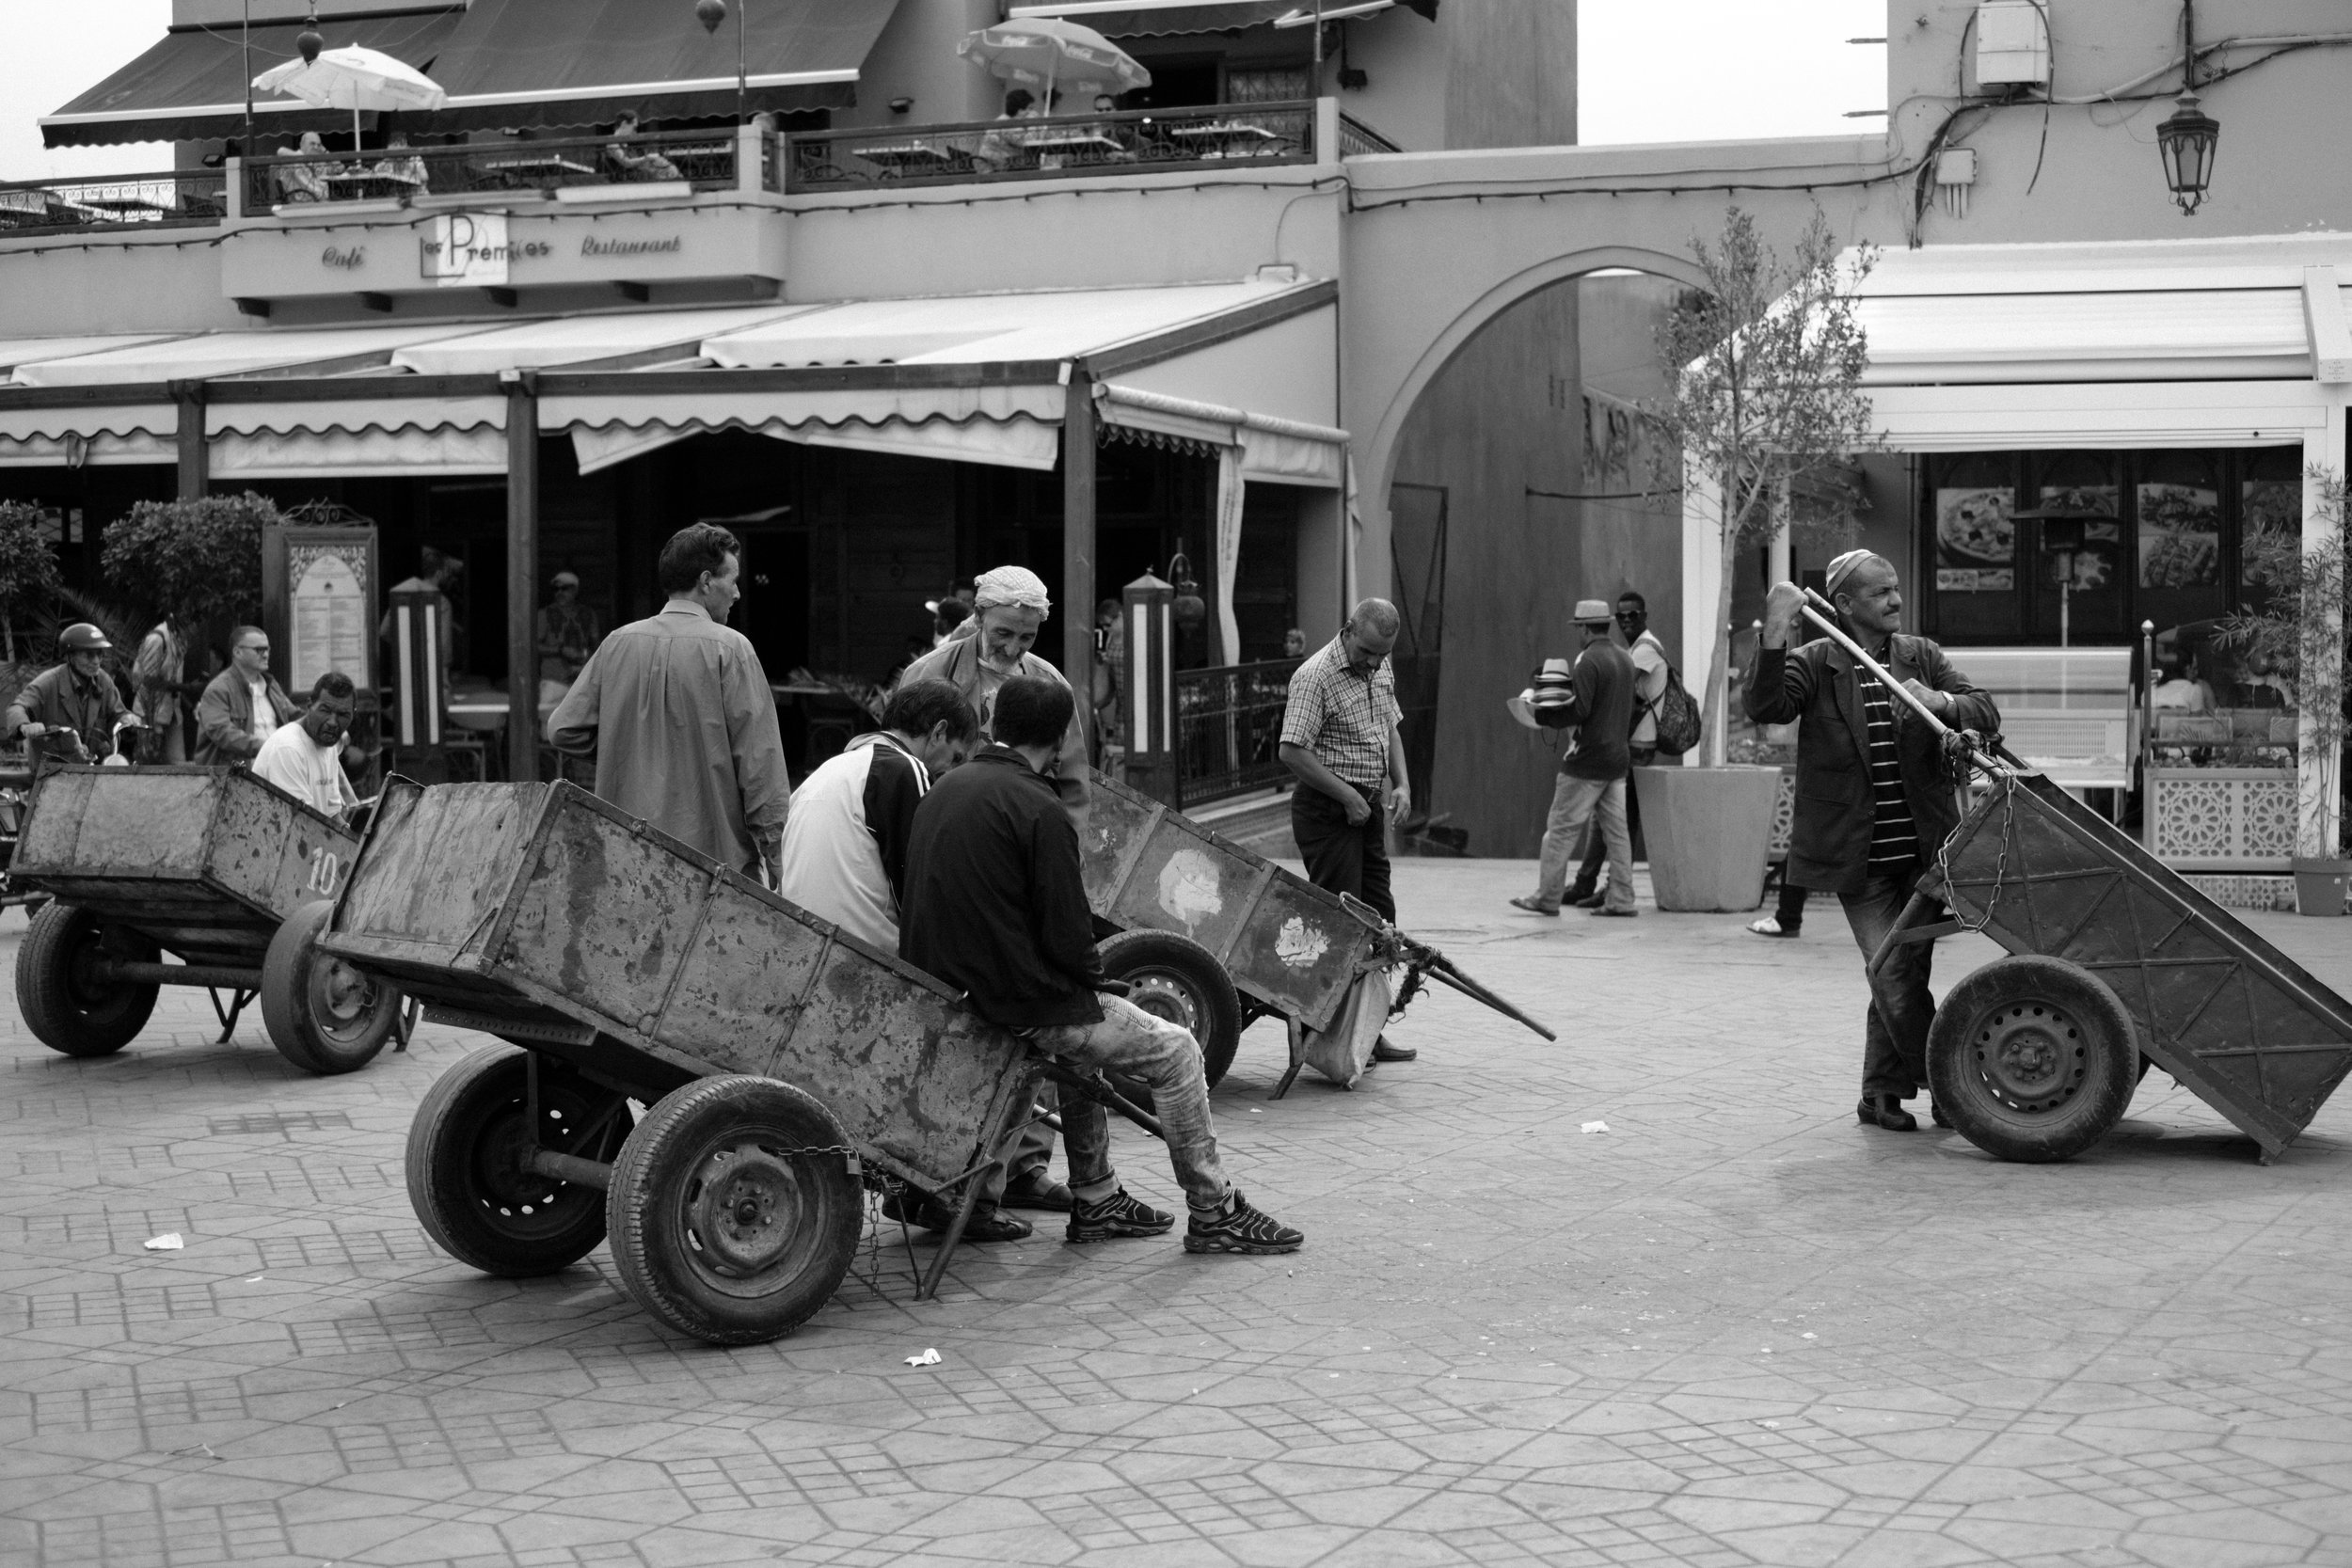 Men are lined up and ready for work at Jemaa el-Fna Square in Marrakech Morocco